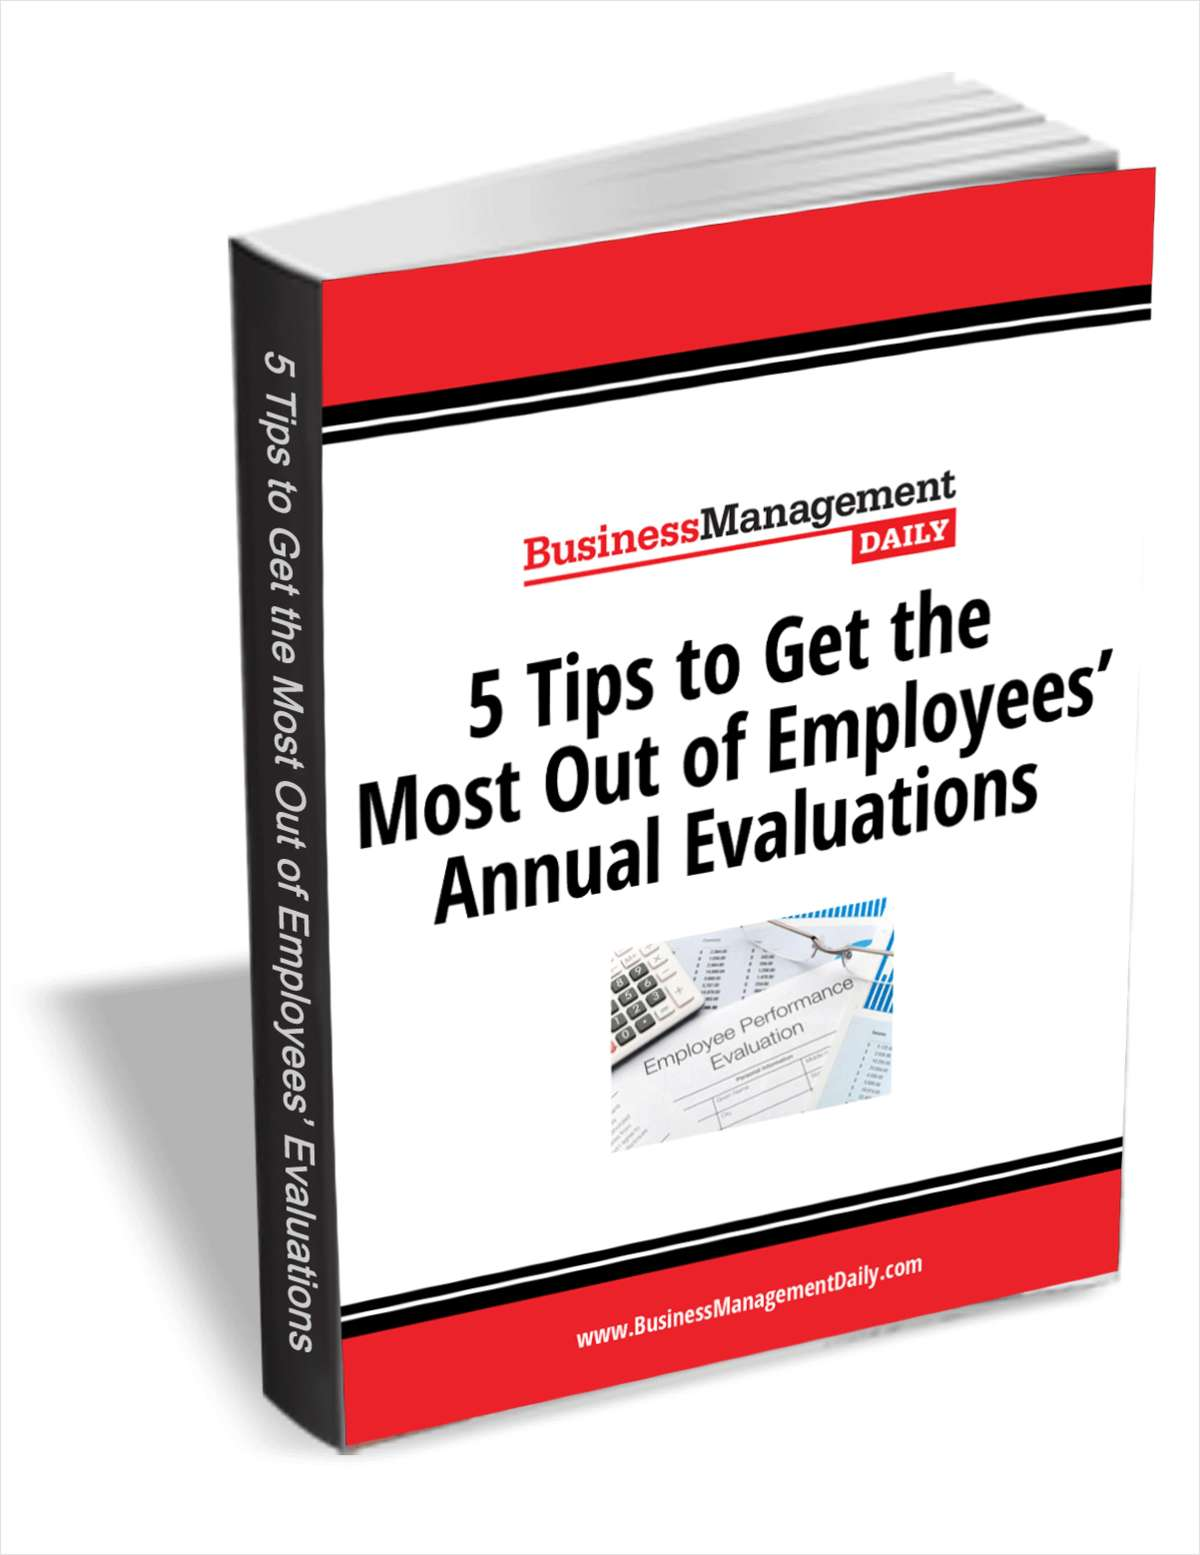 5 Tips to Get the Most Out of Employees' Annual Evaluations